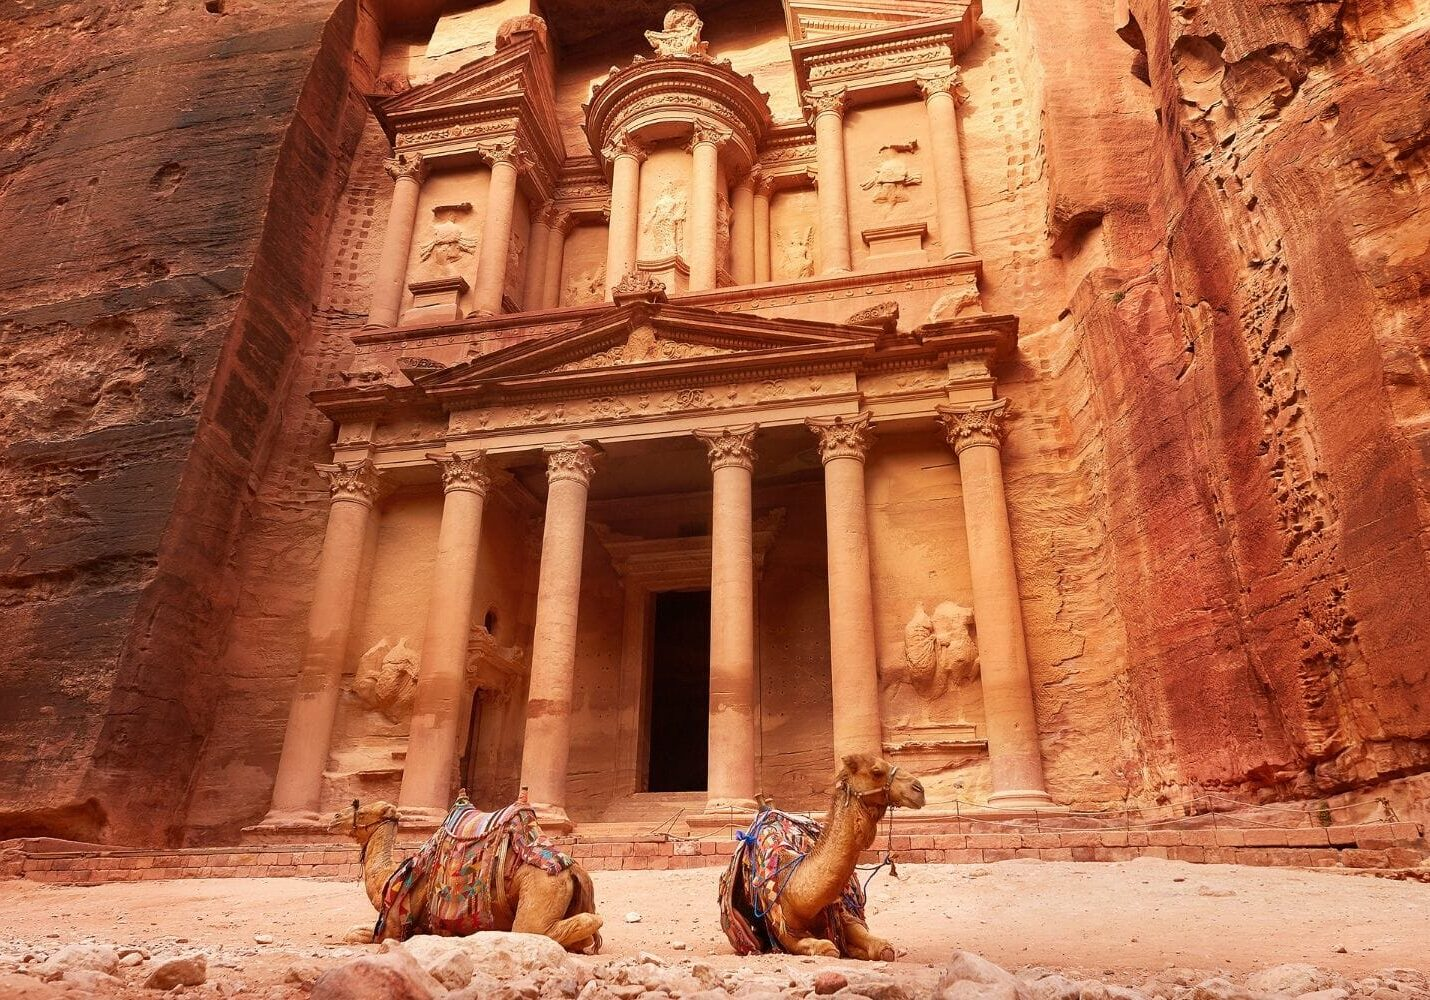 The Treasury of Little Petra in Jordan